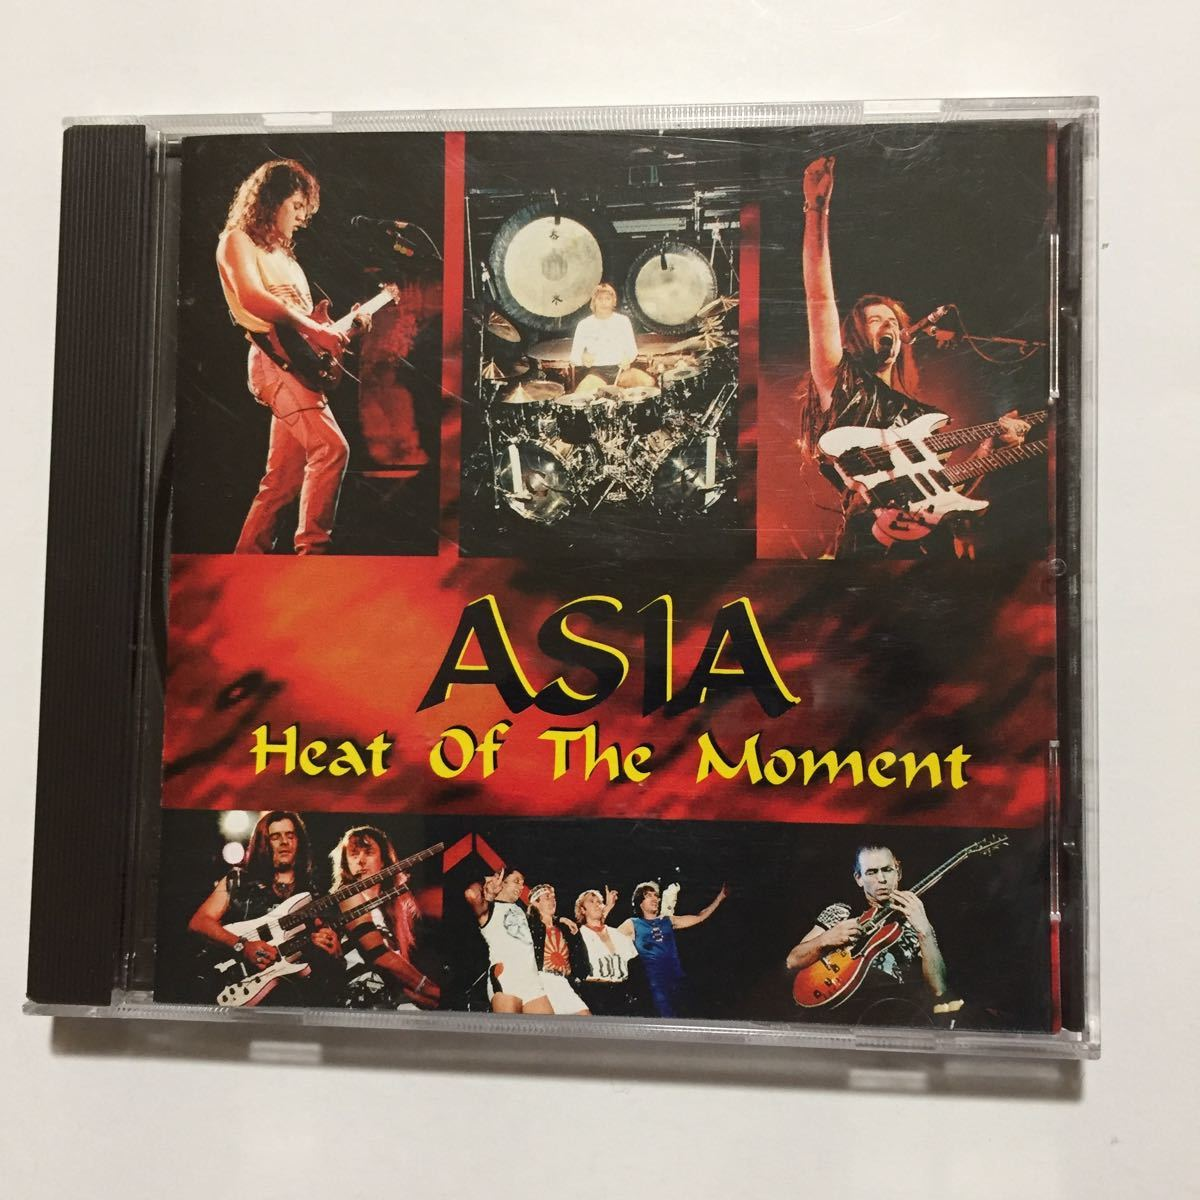 ASIA エイジア Hrat Of The Moment LIVE ライヴ Arena Records Don't Cry 並行輸入盤 全14曲収録 John Wetton Geoff Downes _画像2